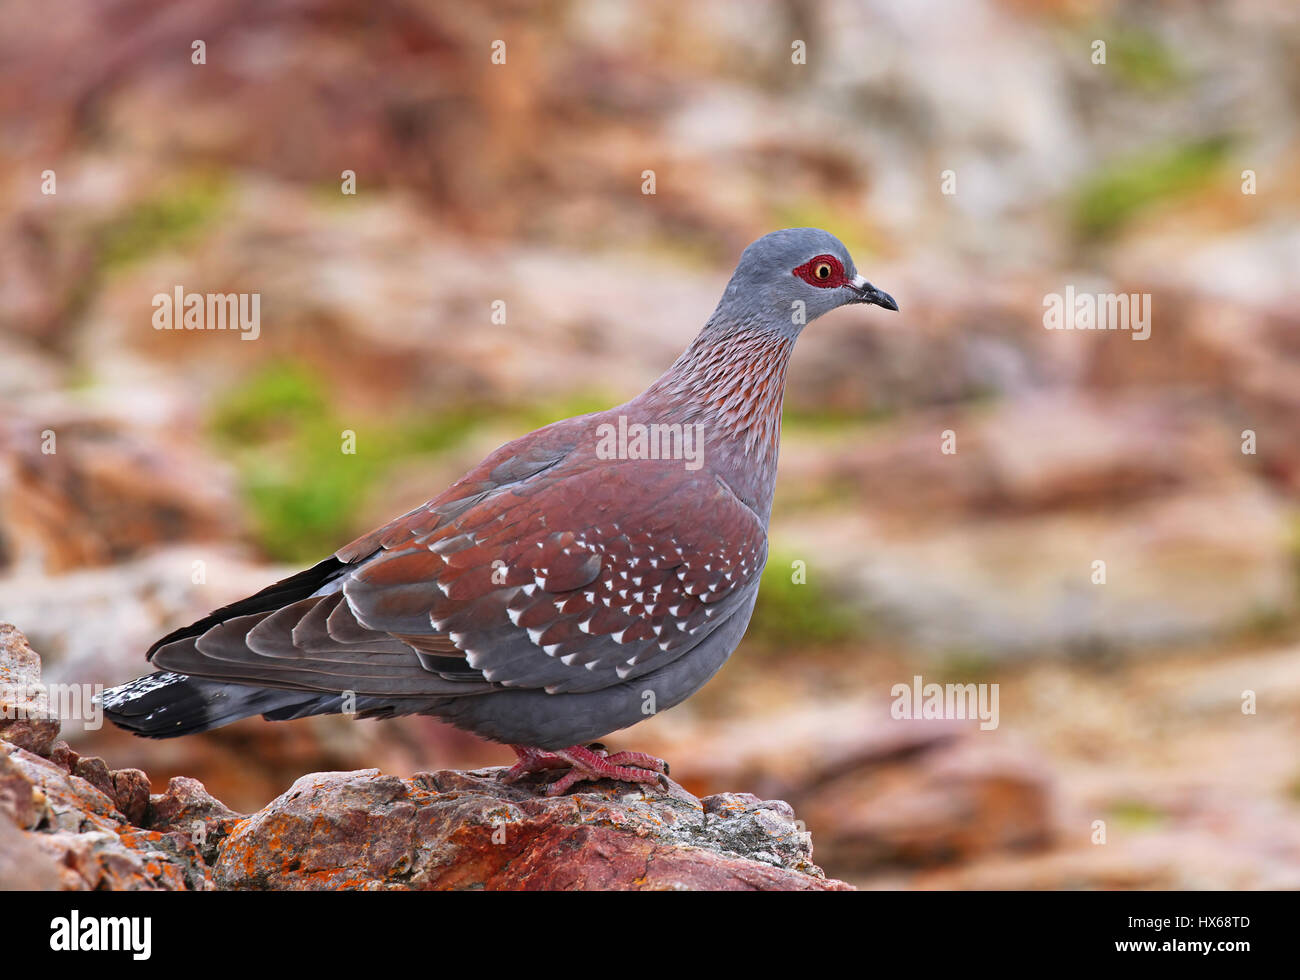 African rock pigeon, speckled pigeon, South Africa - Stock Image